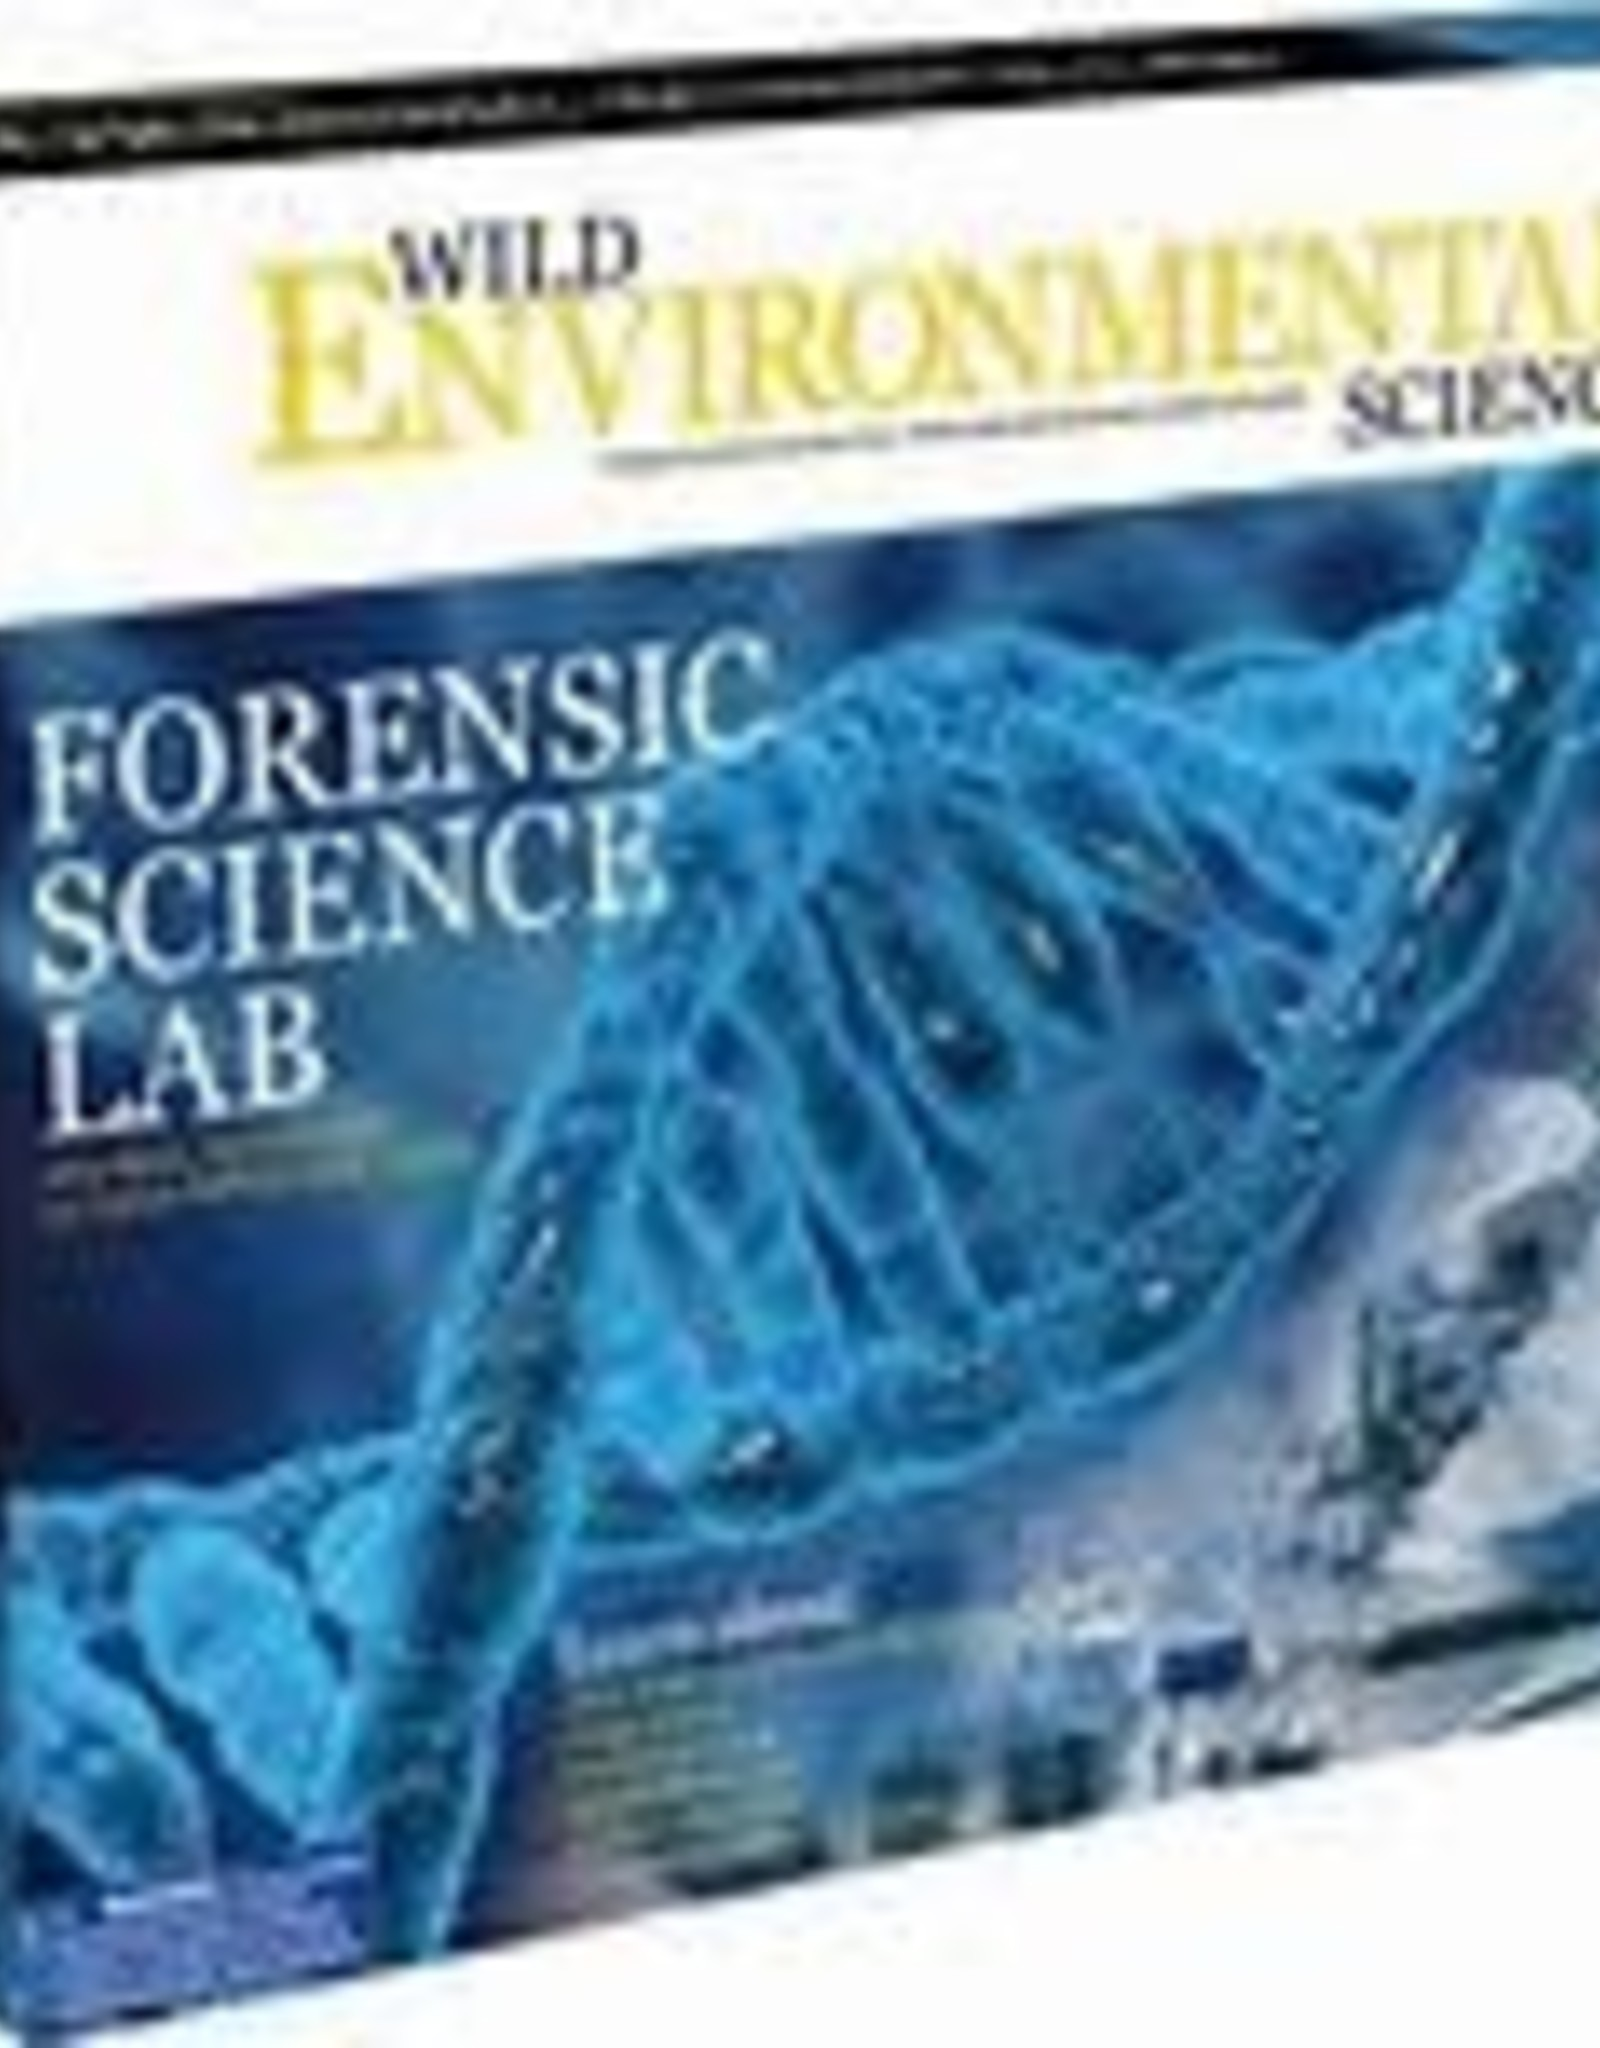 LEARNING ADVANTAGE FORENSIC SCIENCE LAB